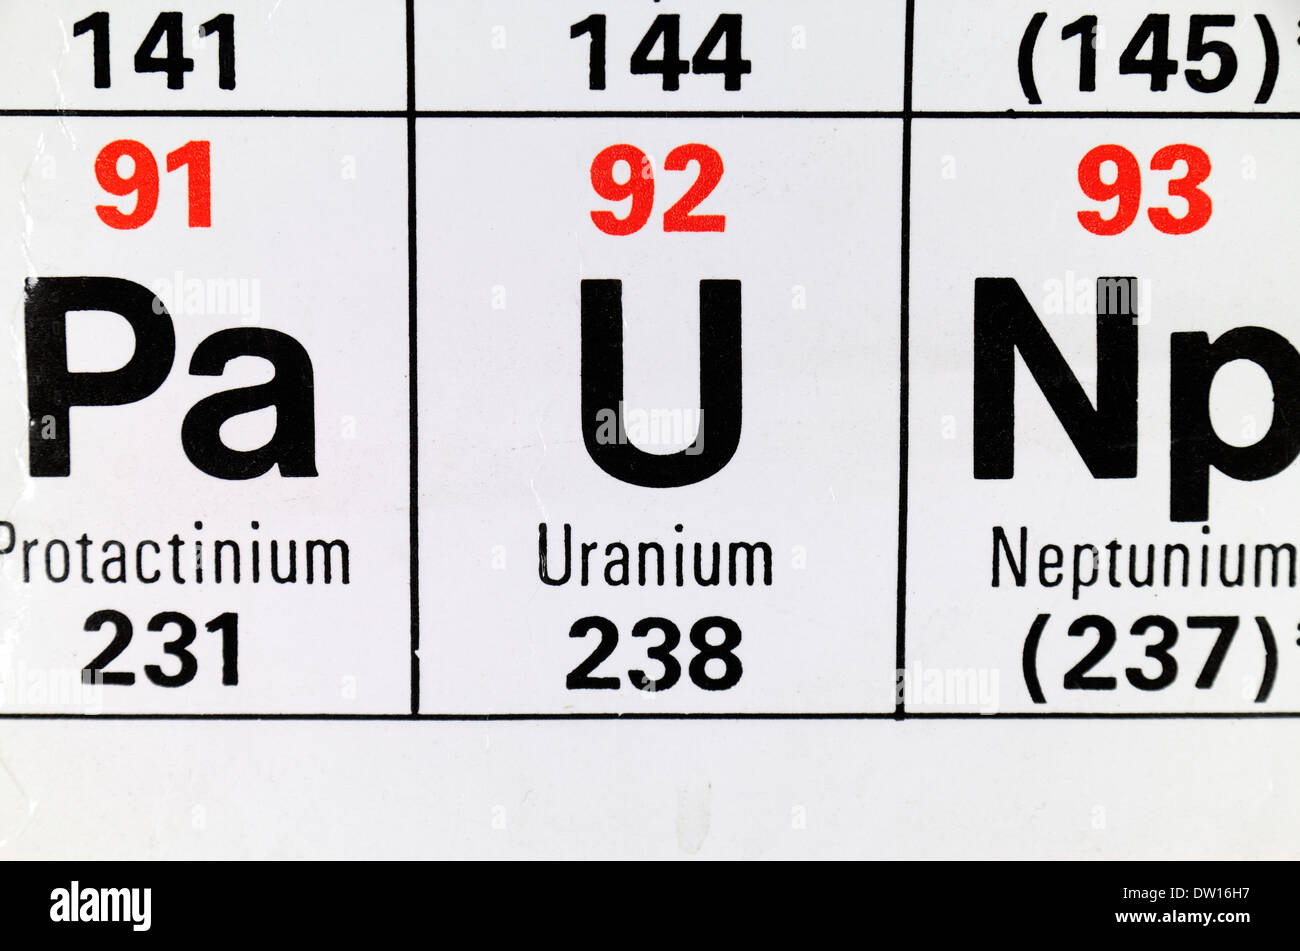 Uranium u as it appears on the periodic table stock photo stock photo uranium u as it appears on the periodic table gamestrikefo Image collections